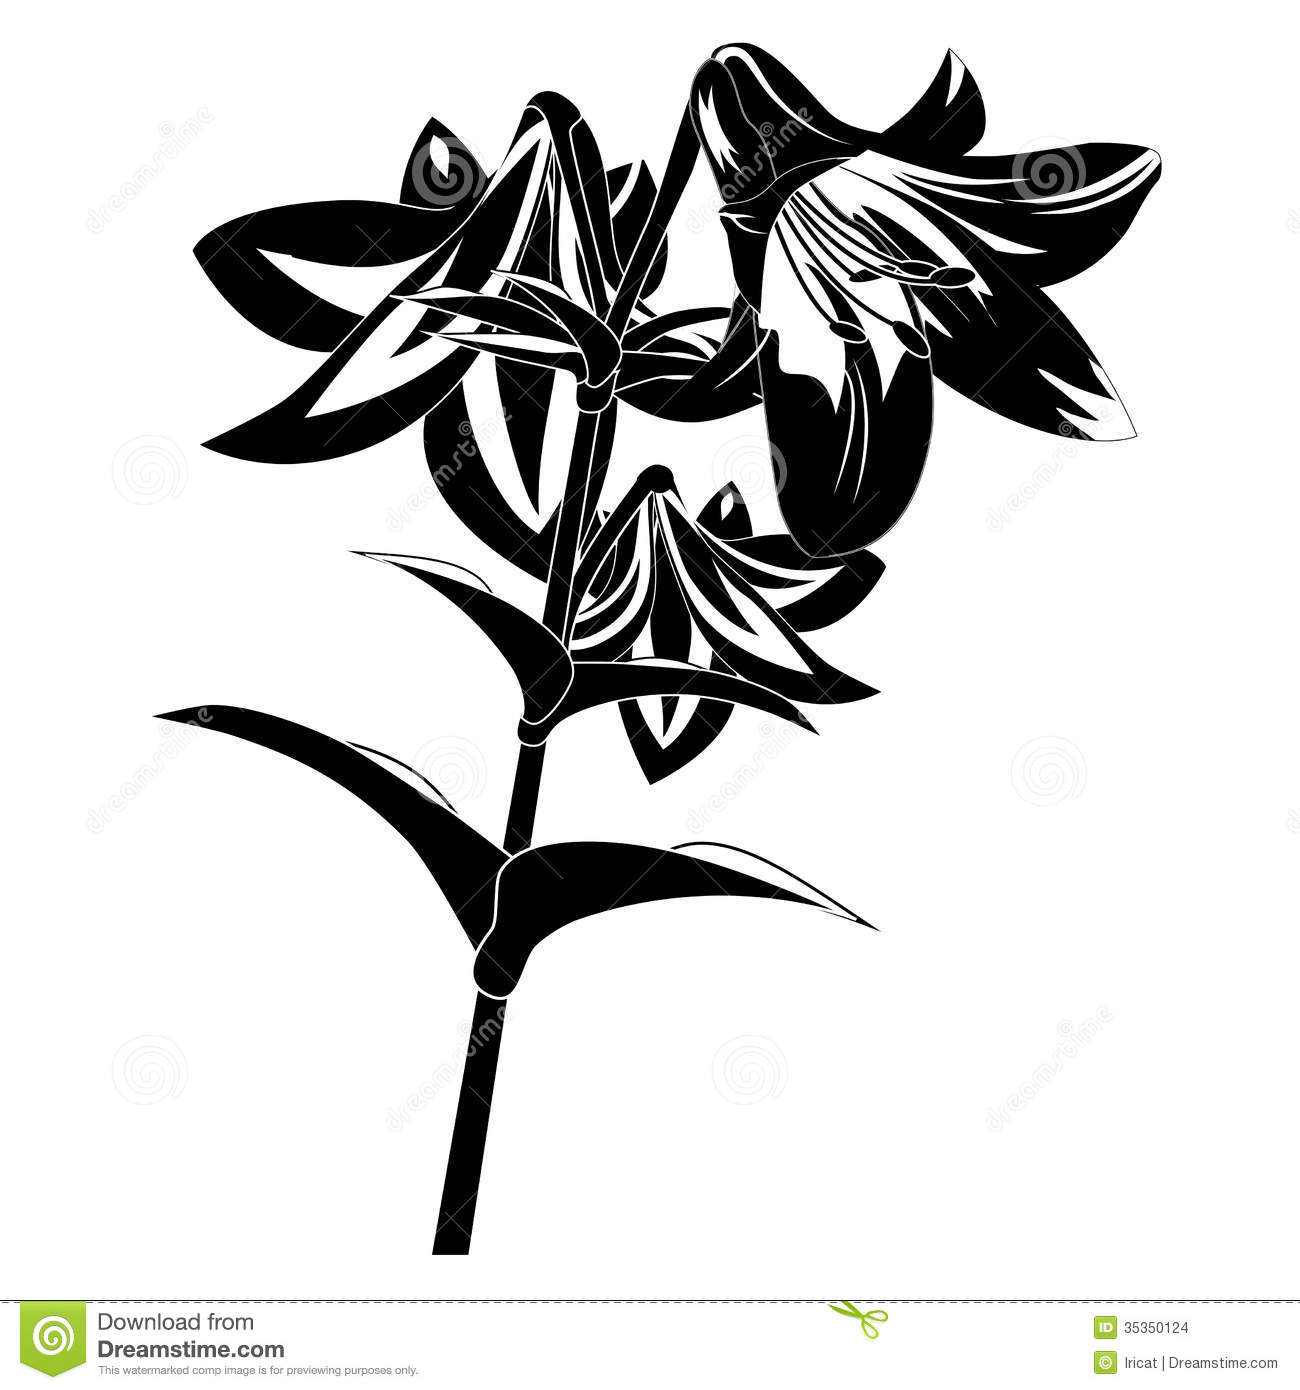 Black Flower Silhouette Stock Vector Illustration Of: Silhouette Flower Stock Vector. Illustration Of Isolated